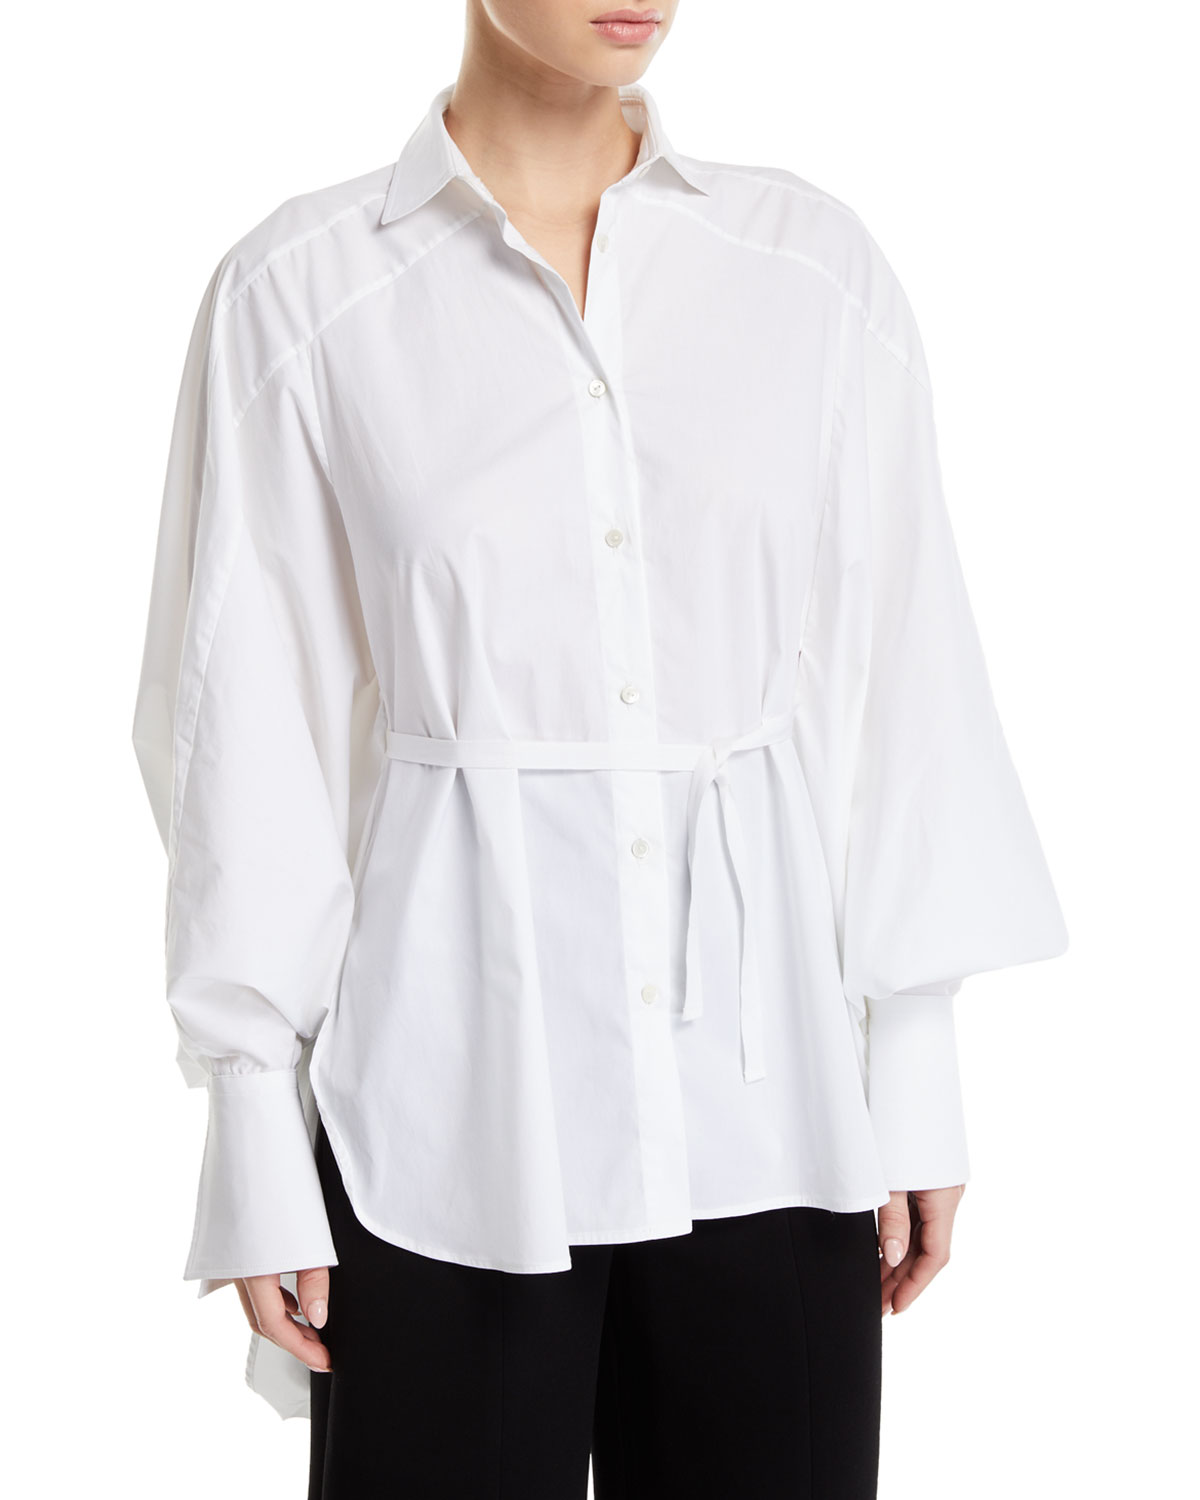 PALMER//HARDING Streep Draped-Back Cotton Button-Front Shirt in White